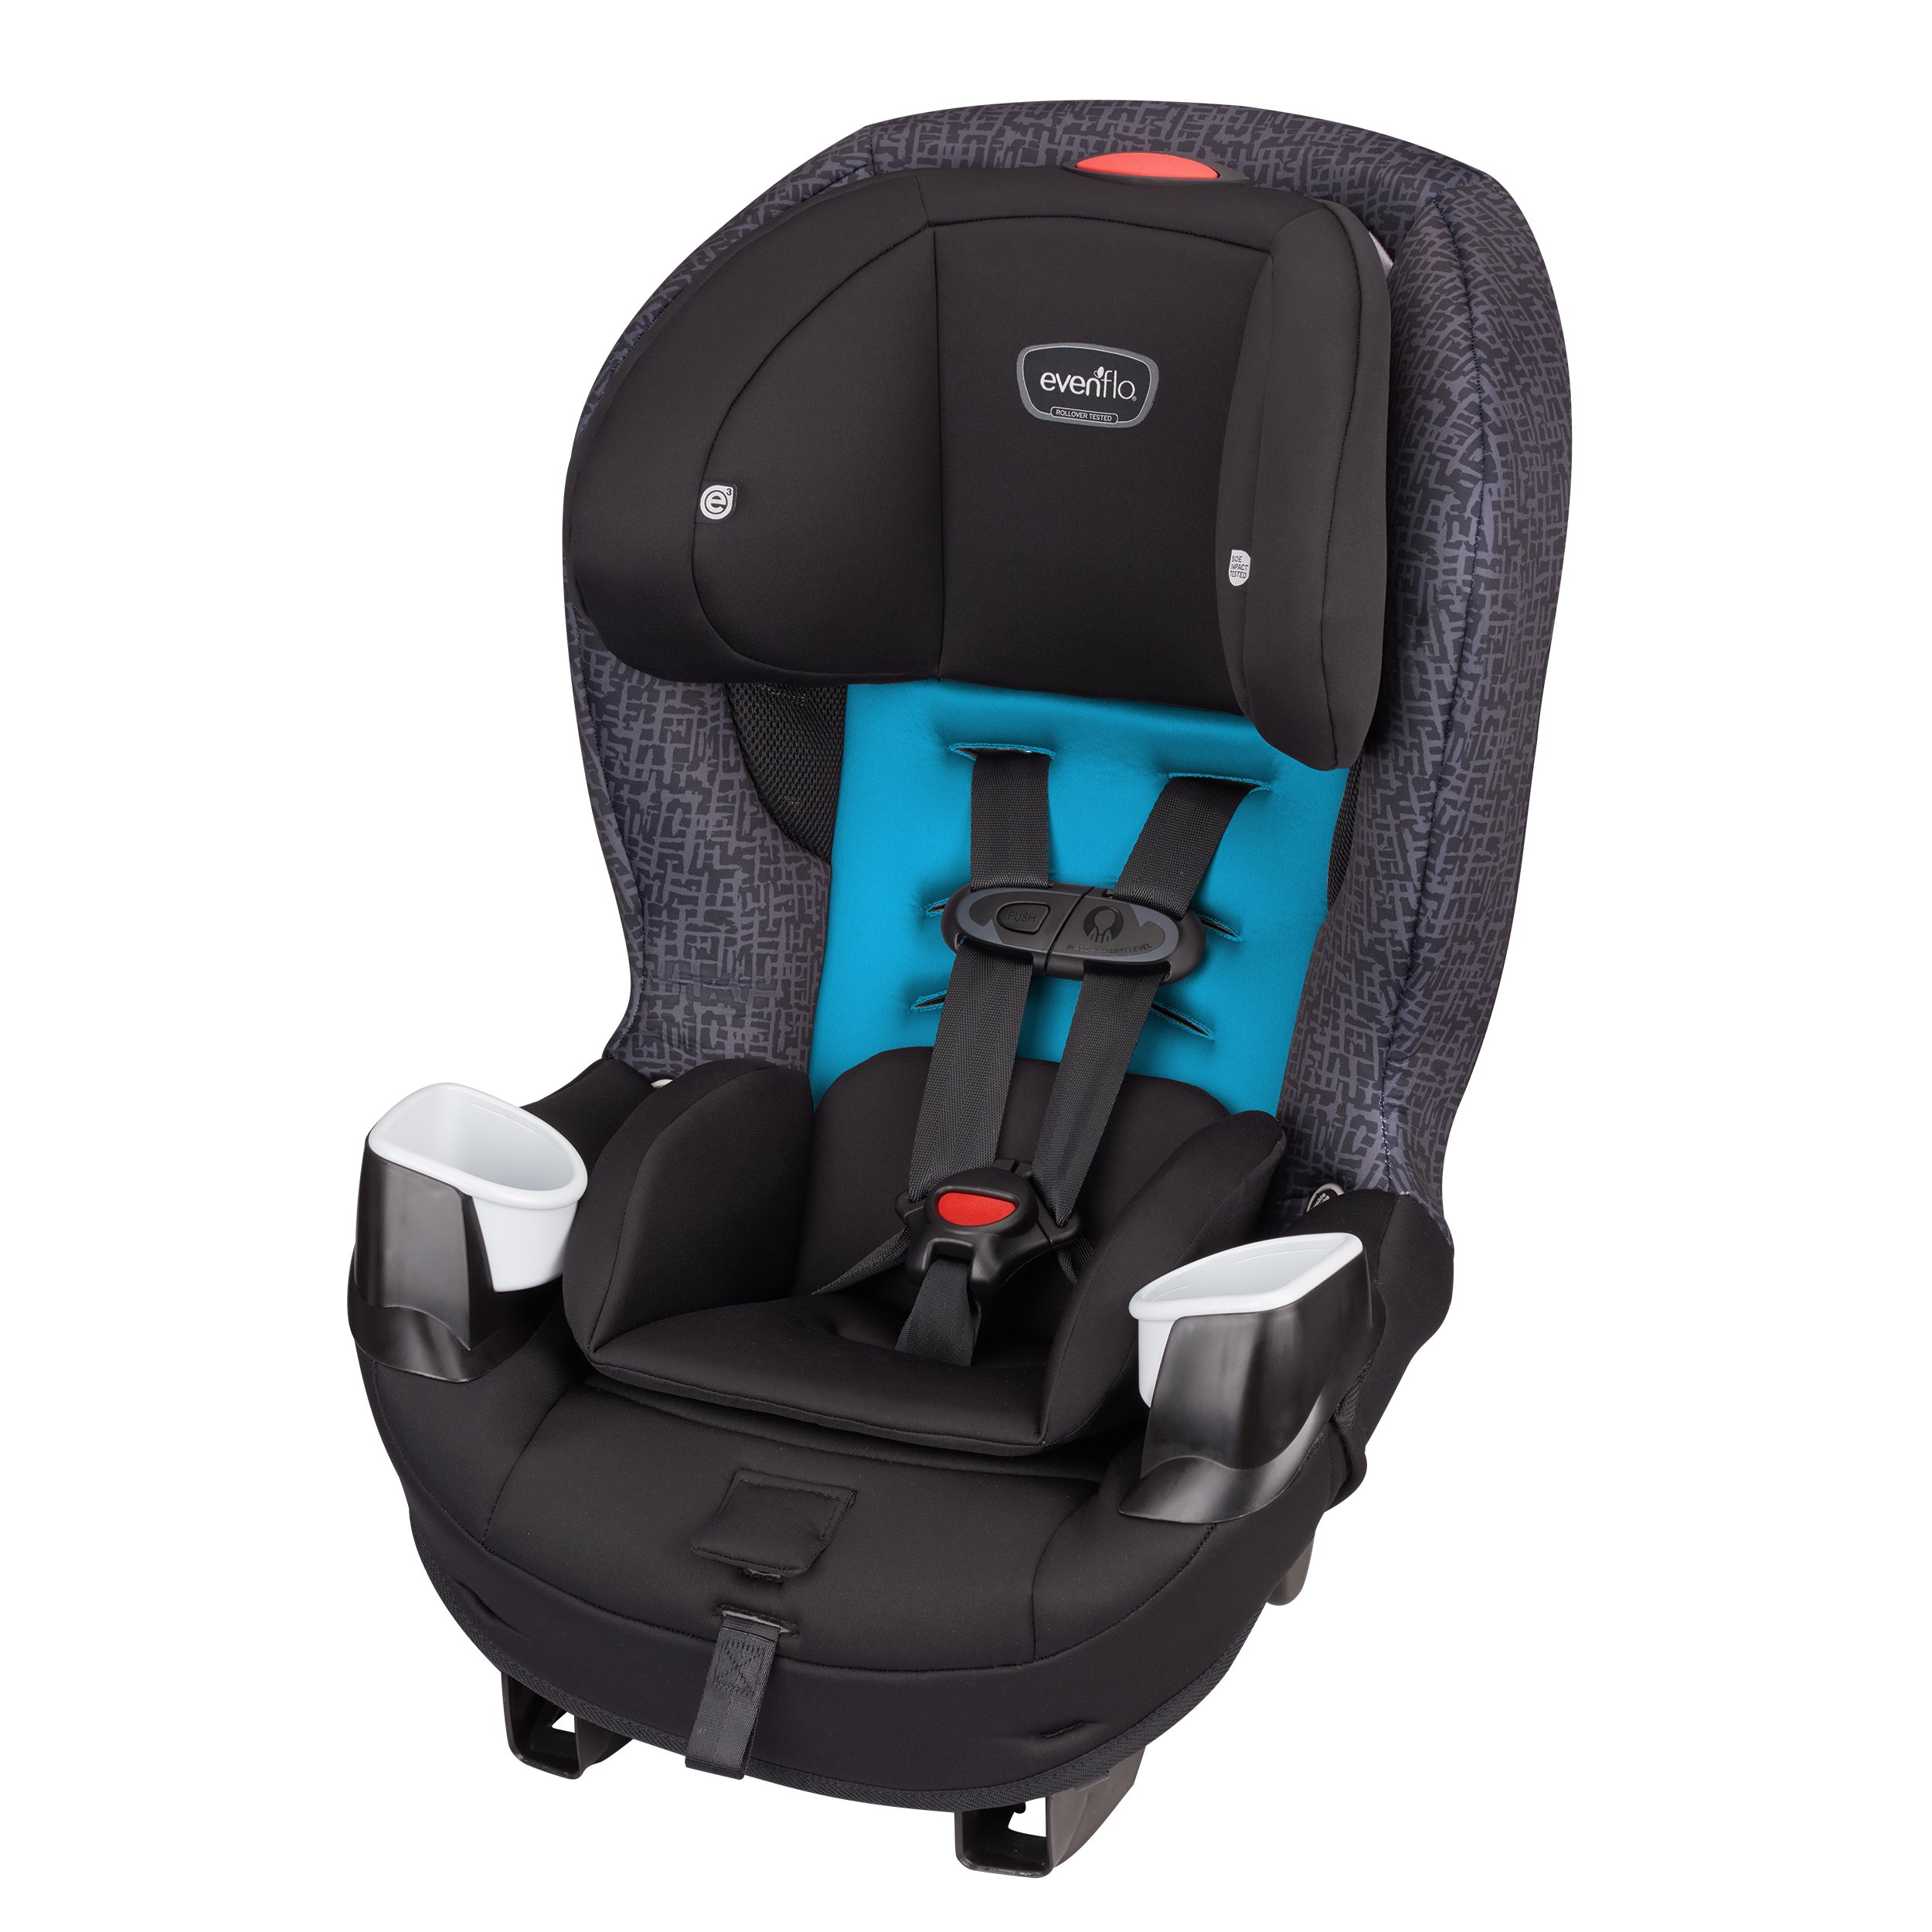 Evenflo Sureride Dlx Convertible Car Seat >> Amazon.com : Evenflo Stratos 65 Convertible Car Seat, Pink Sunset : Baby